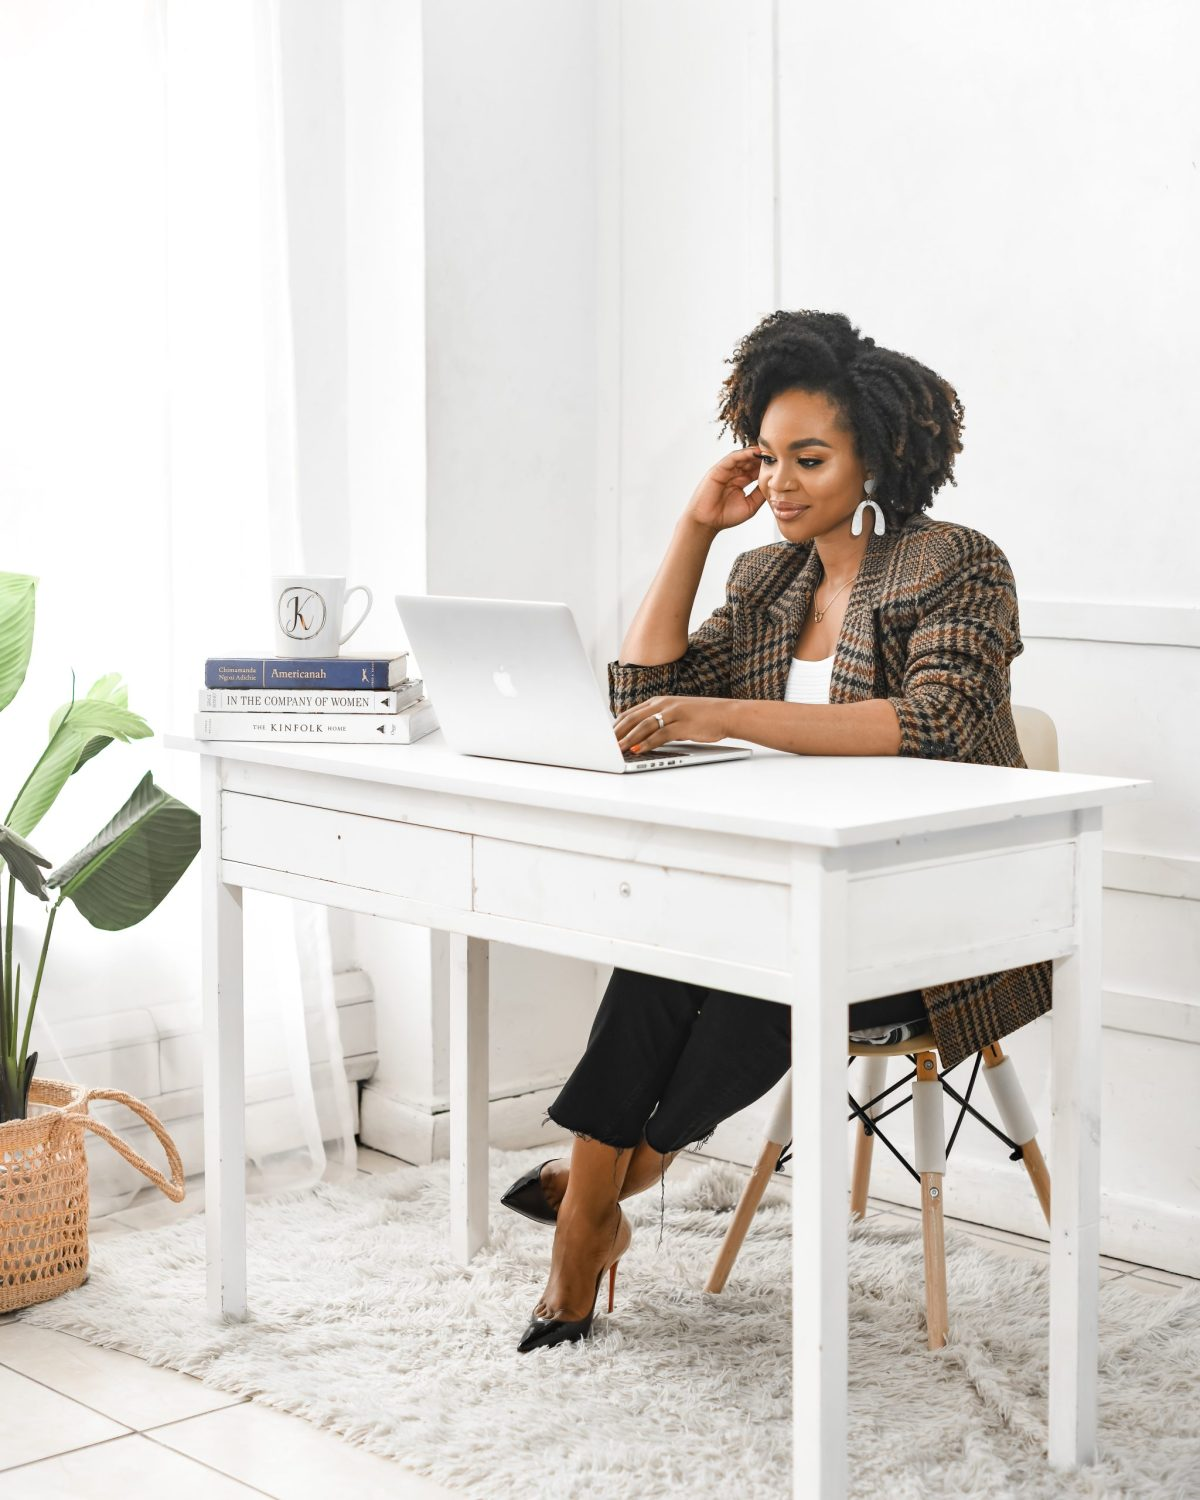 Blogger sitting at desk in blazer and louboutin heels